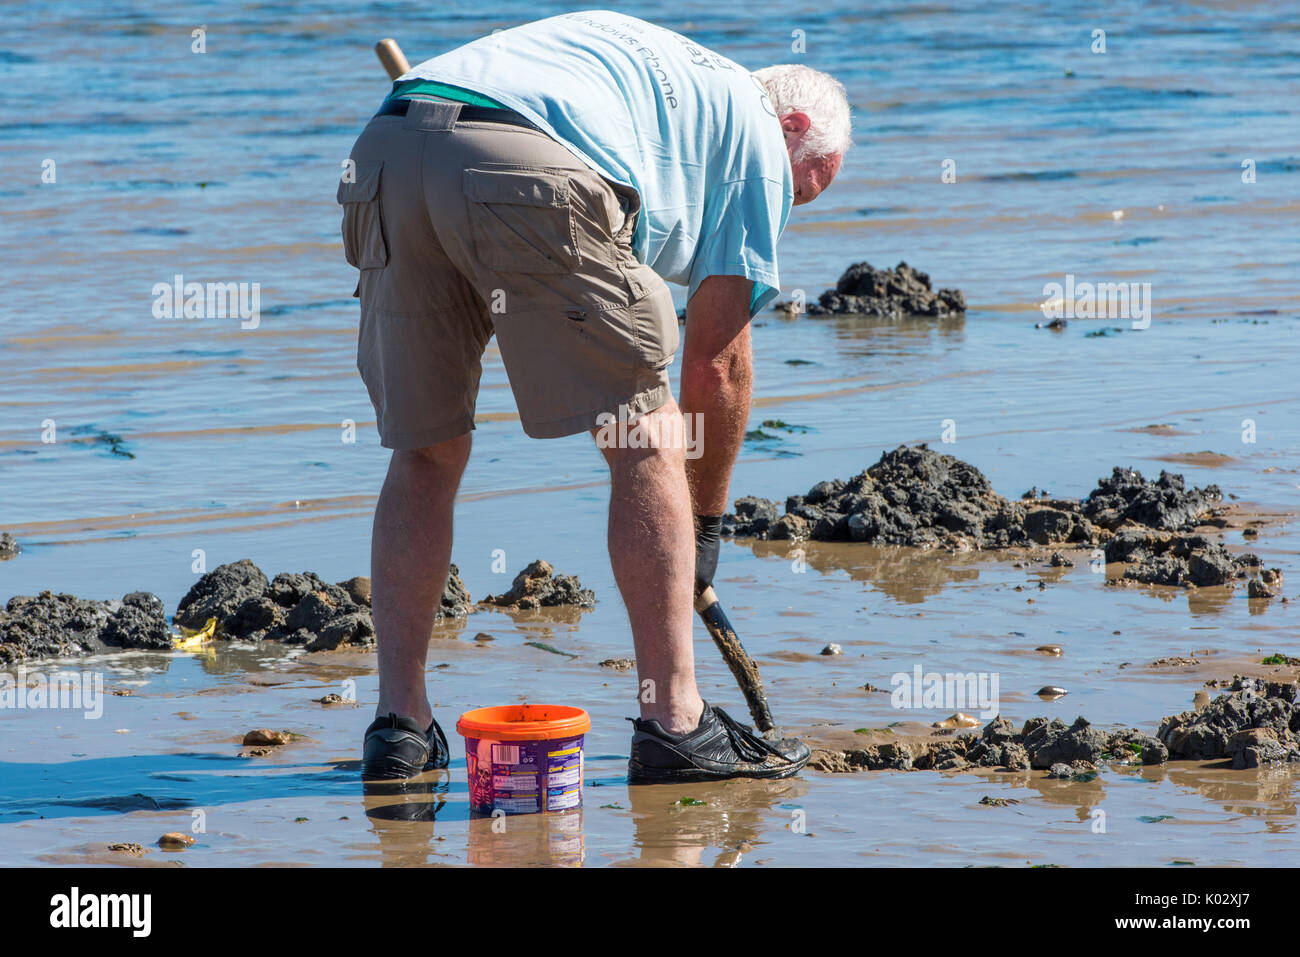 Fisherman digging for lugworms in Herne Bay, Kent. - Stock Image